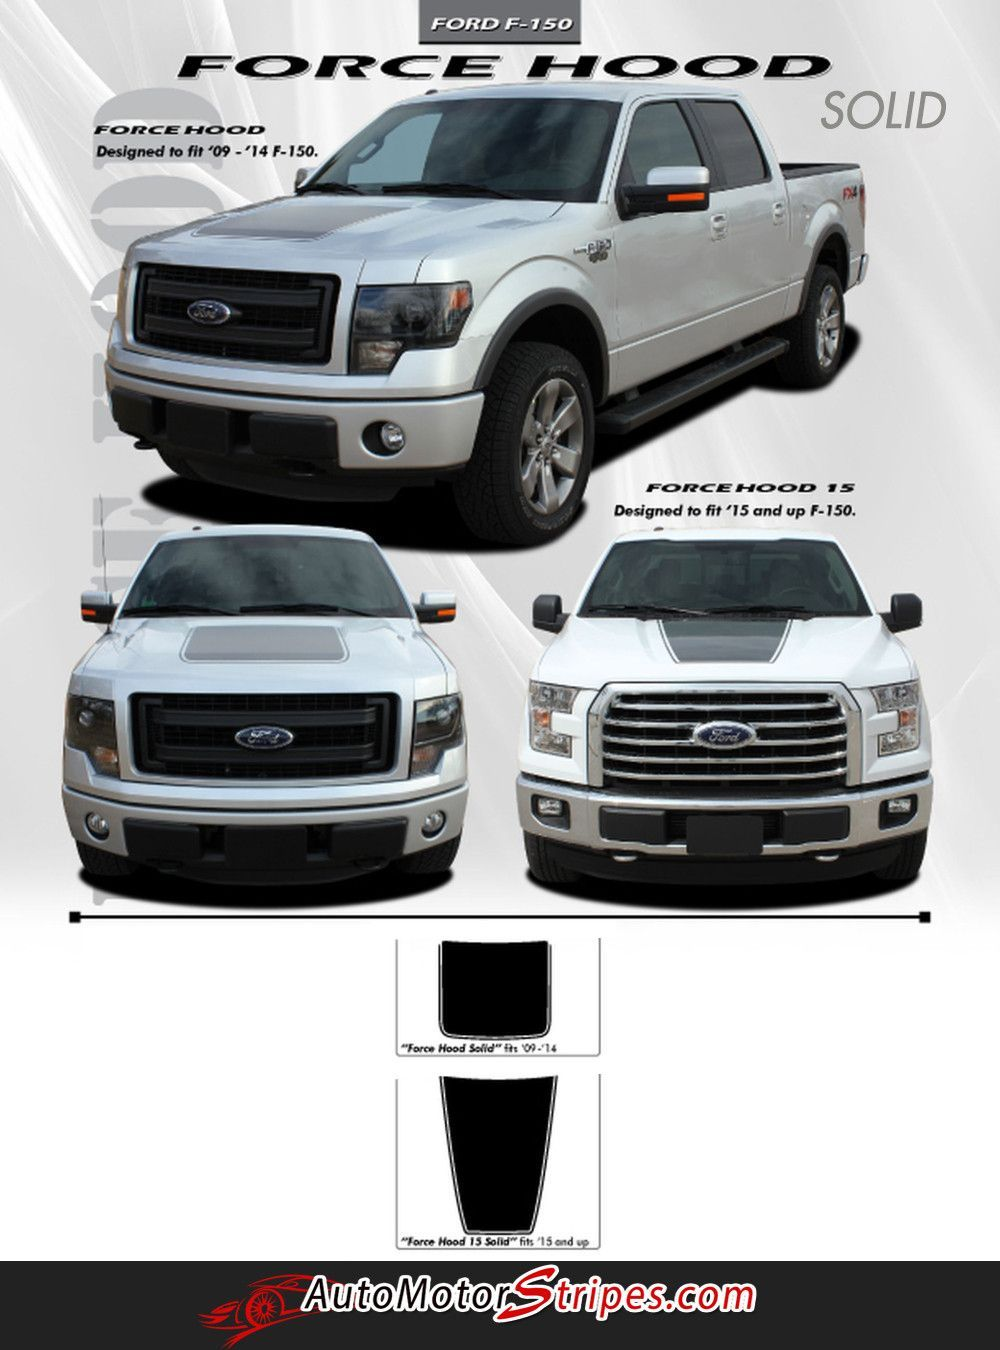 2014 Ford F-150 STX SuperCrew announced - Carfanatics Blog